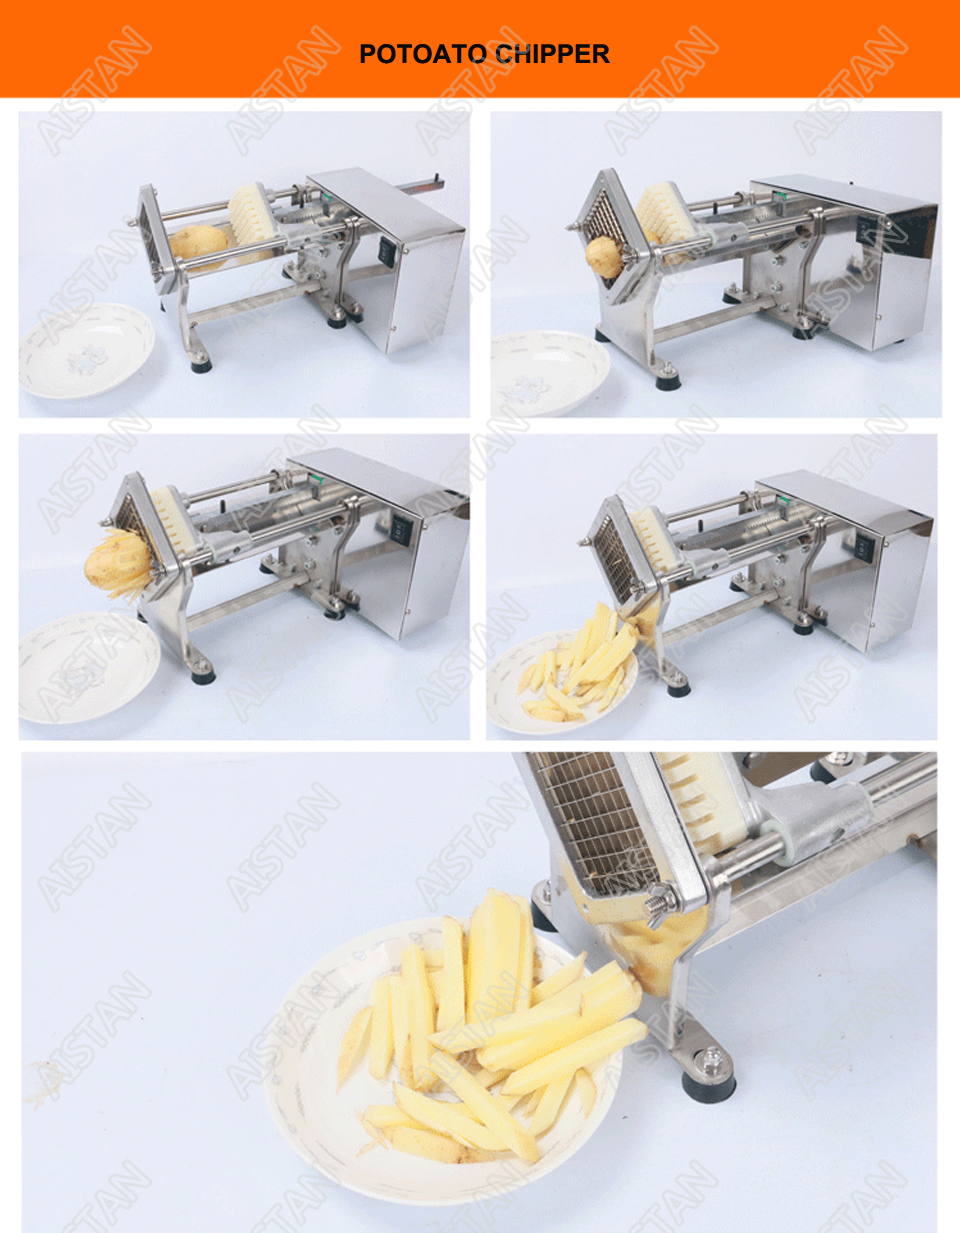 STJ19 Electric Potato Chipper Carrot Slicer Automatic Heavy Duty Stainless Steel 2